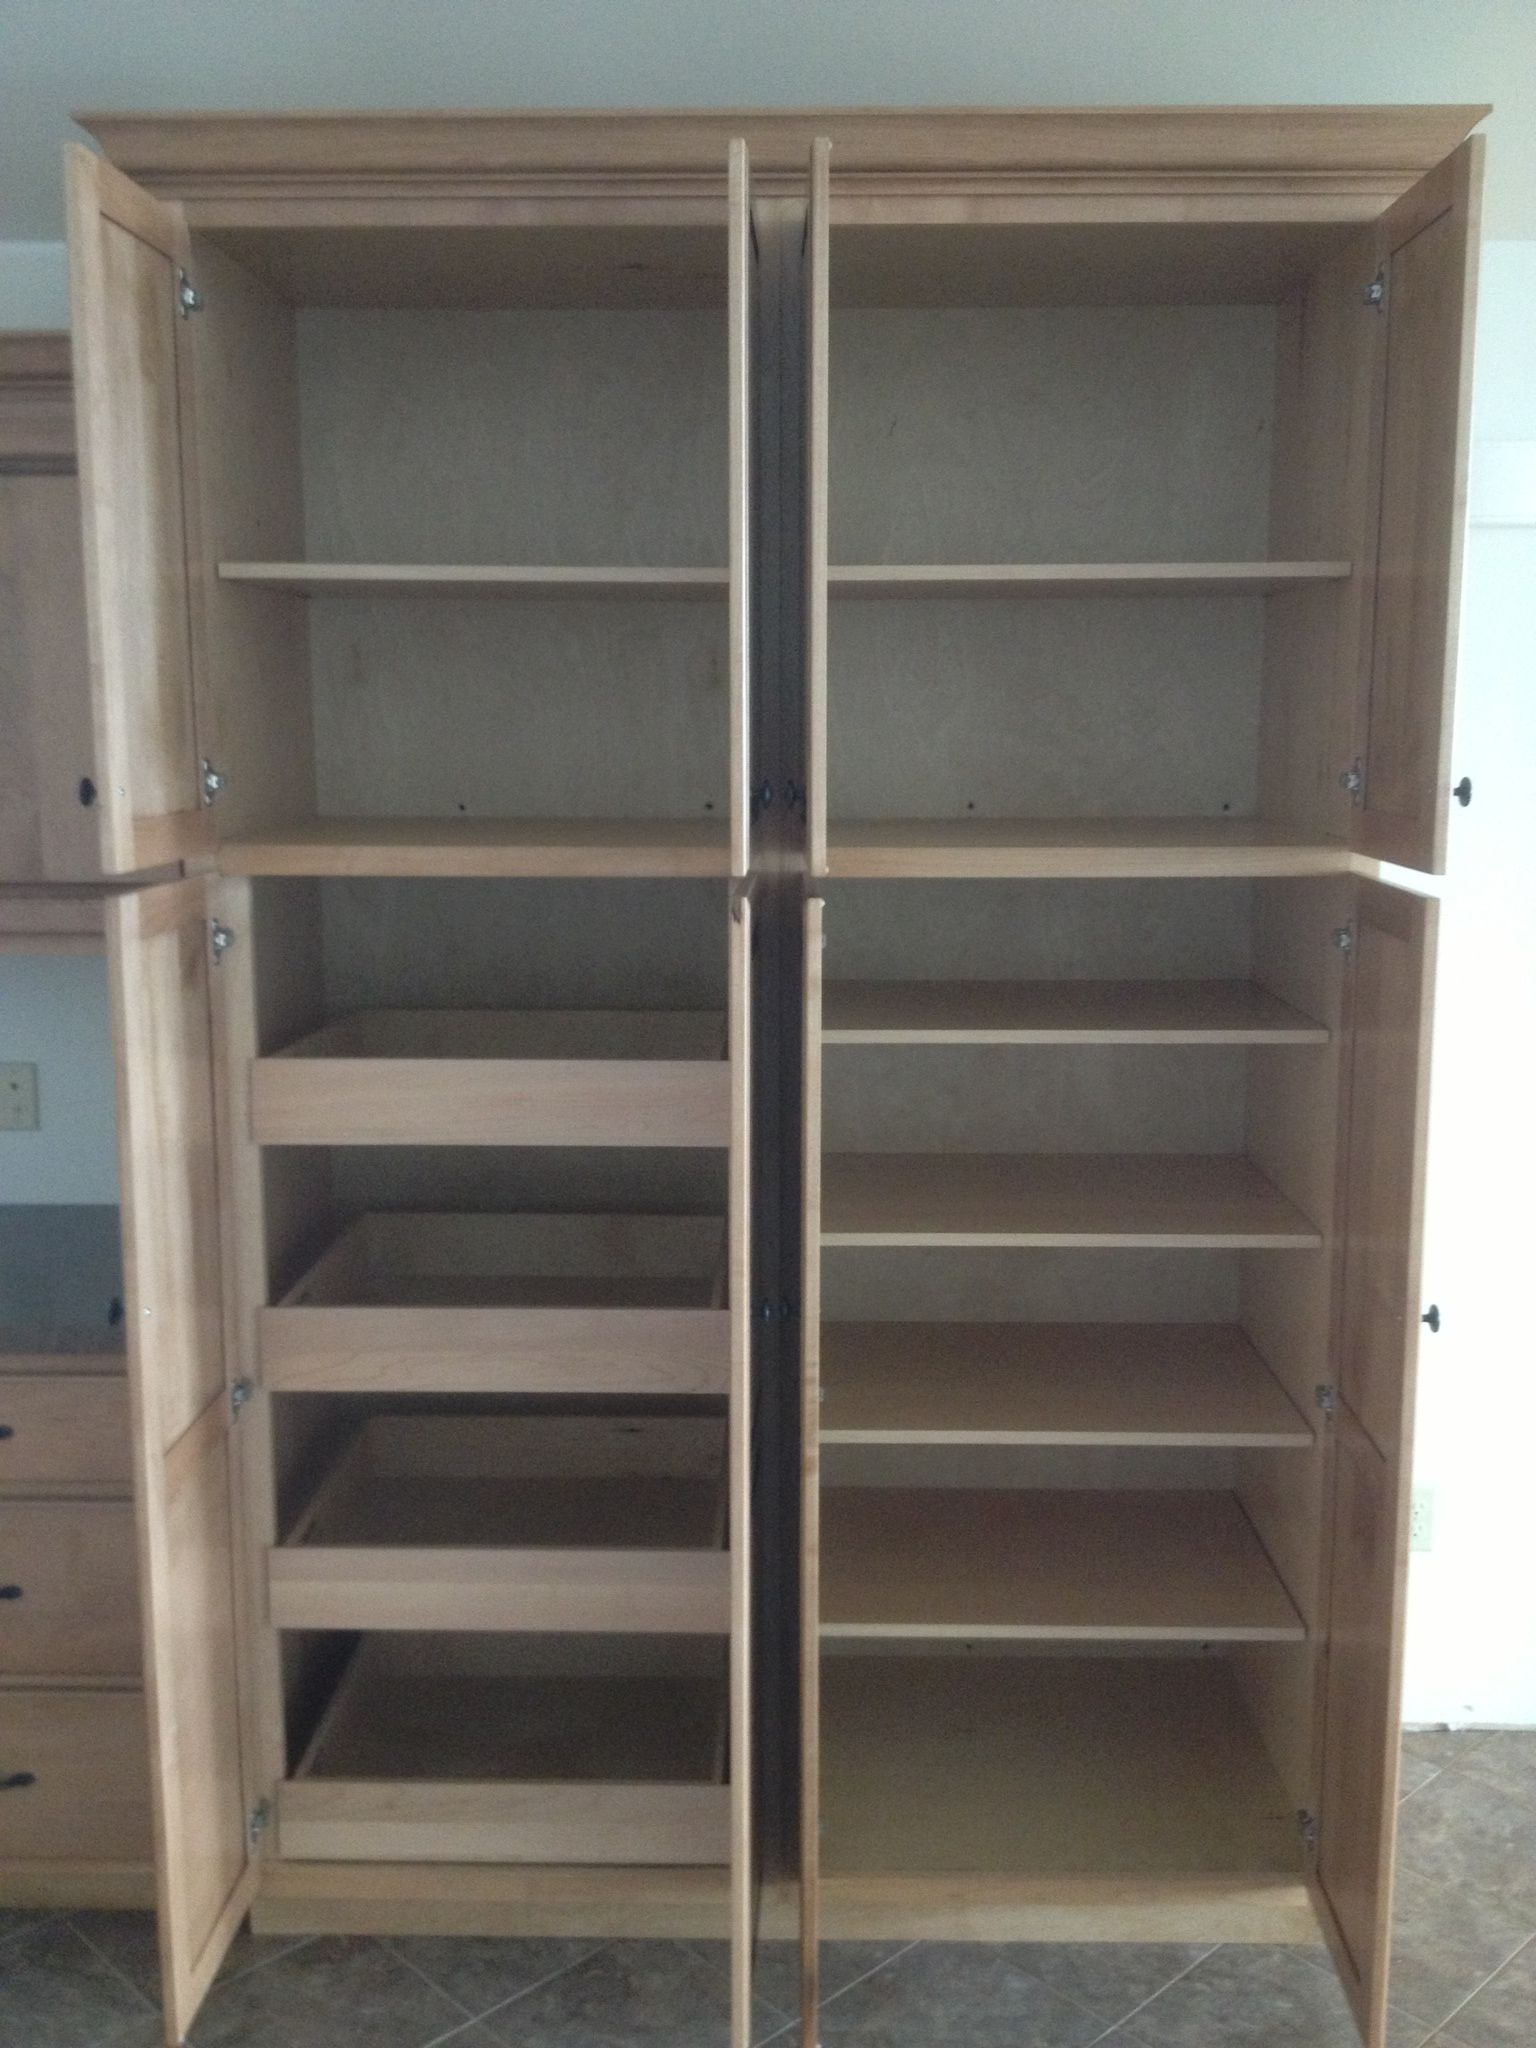 (Cabinets By Olde Mill Cabinet Co. Myerstown, PA)